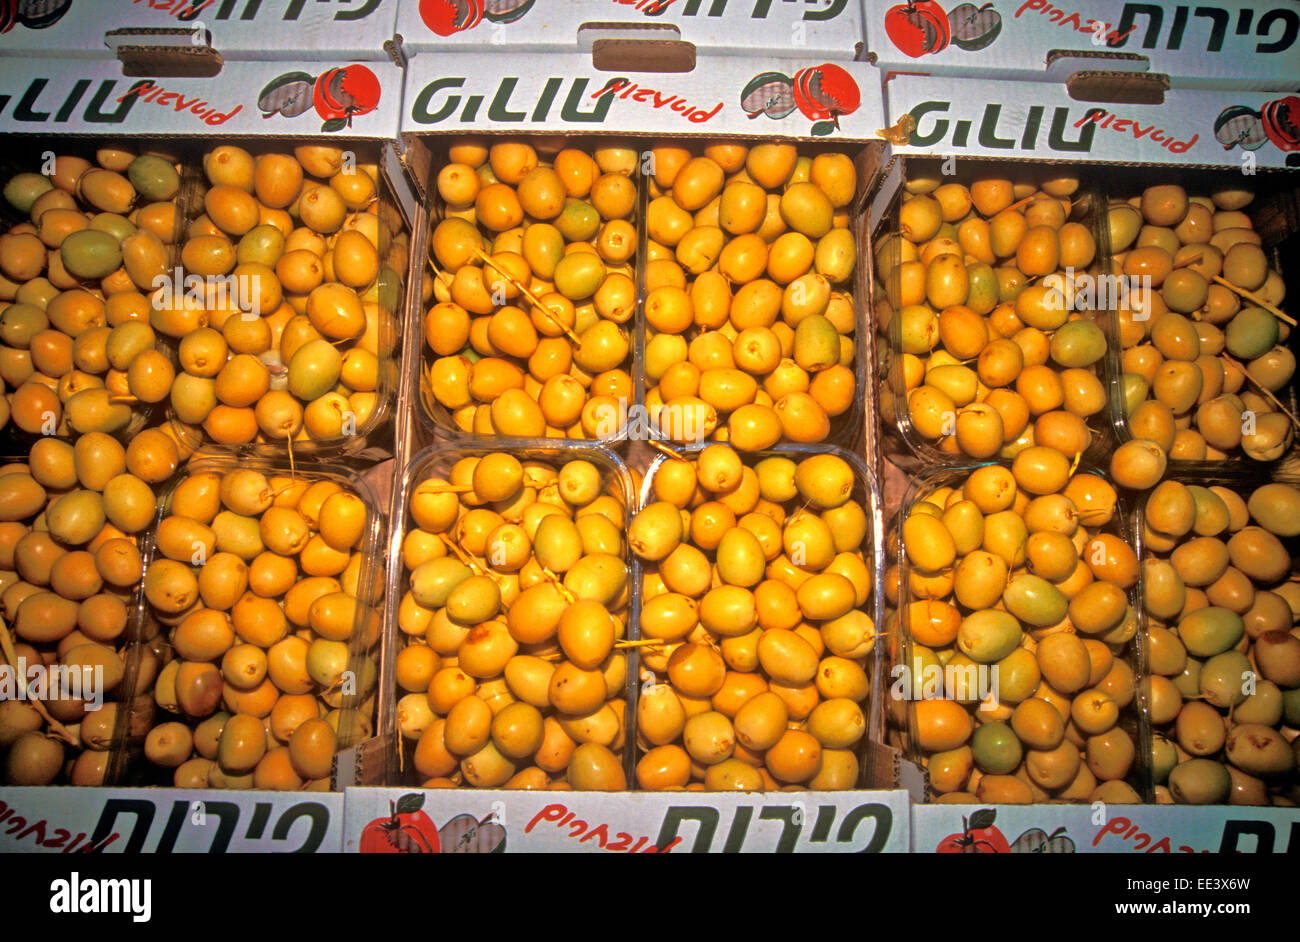 Yellow dates in boxes, Israel - Stock Image